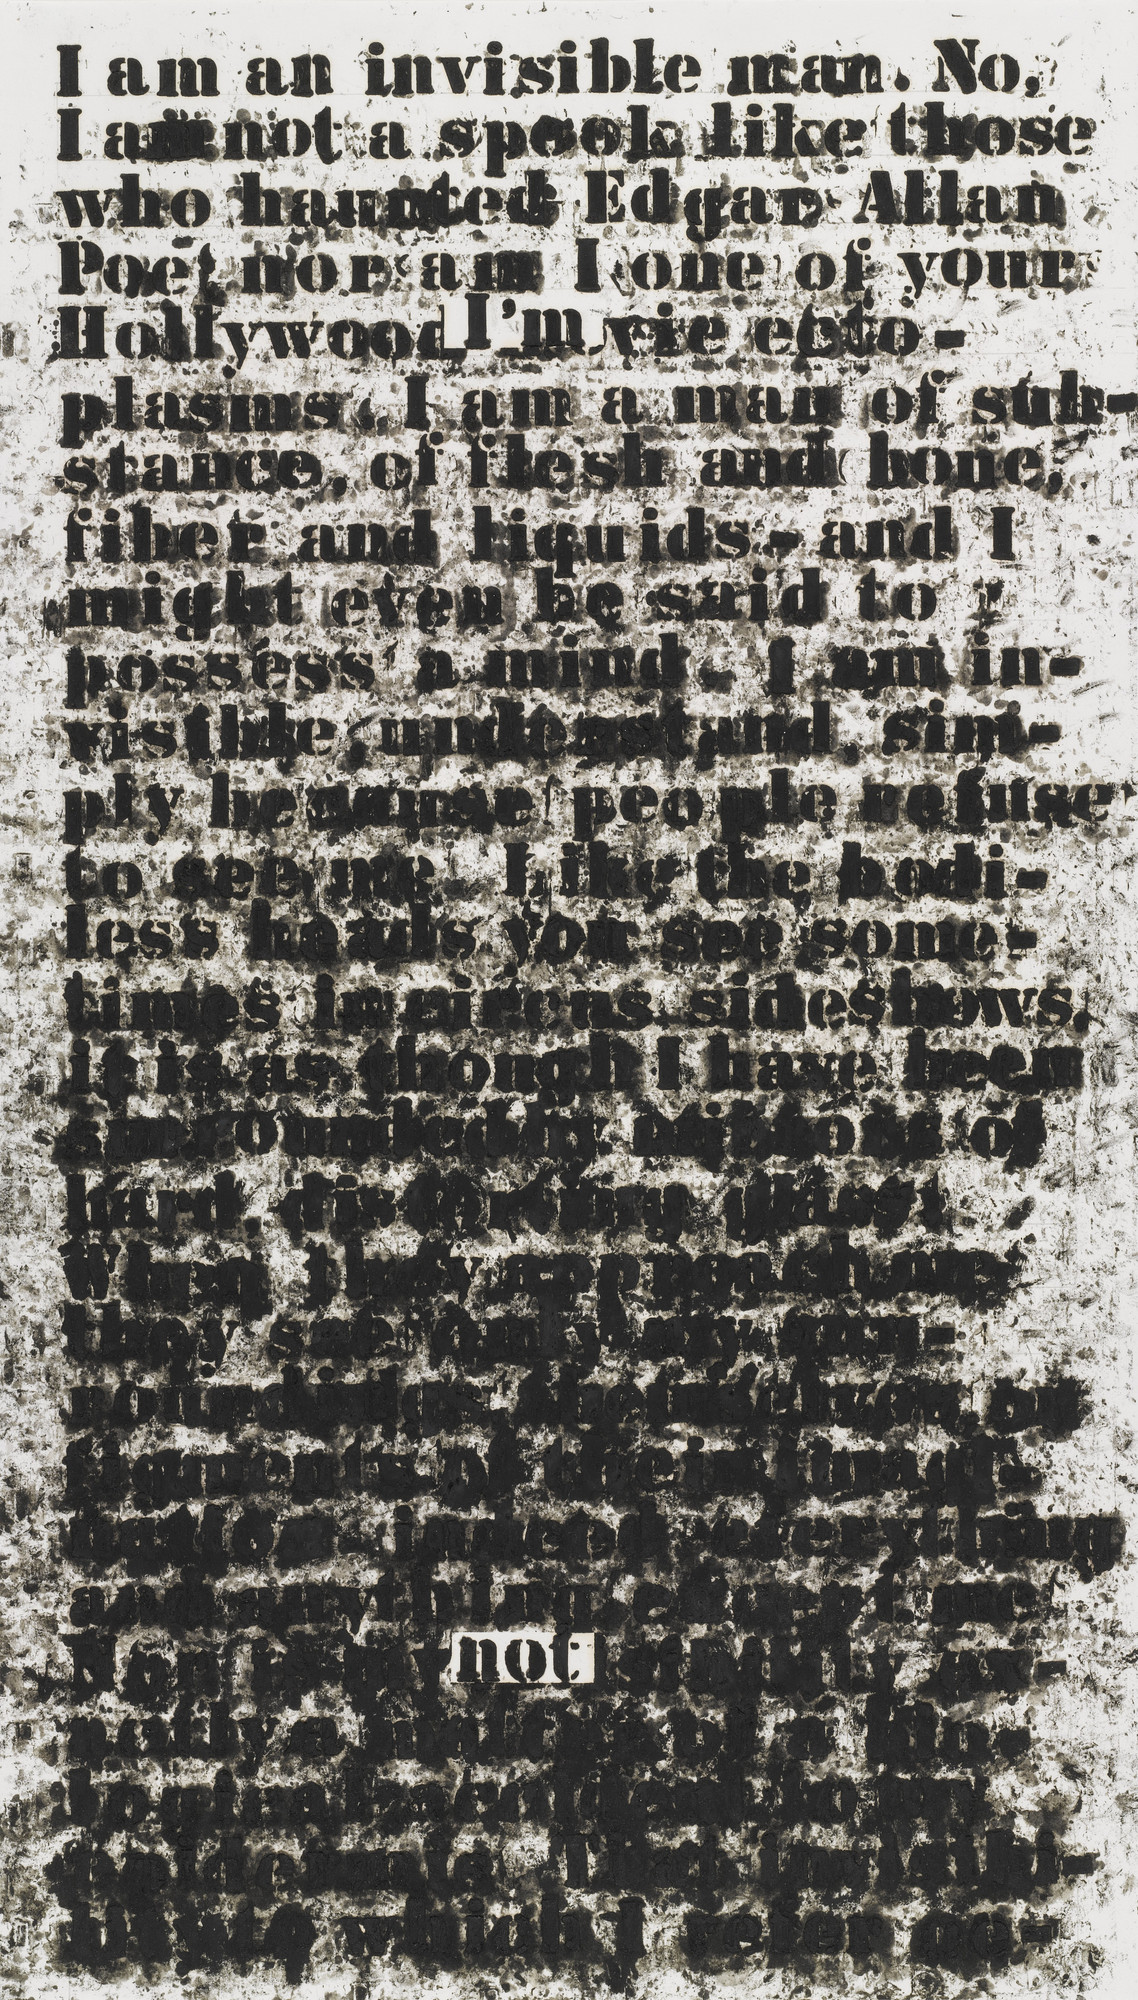 Glenn Ligon. Untitled (I am an invisible man). 1991